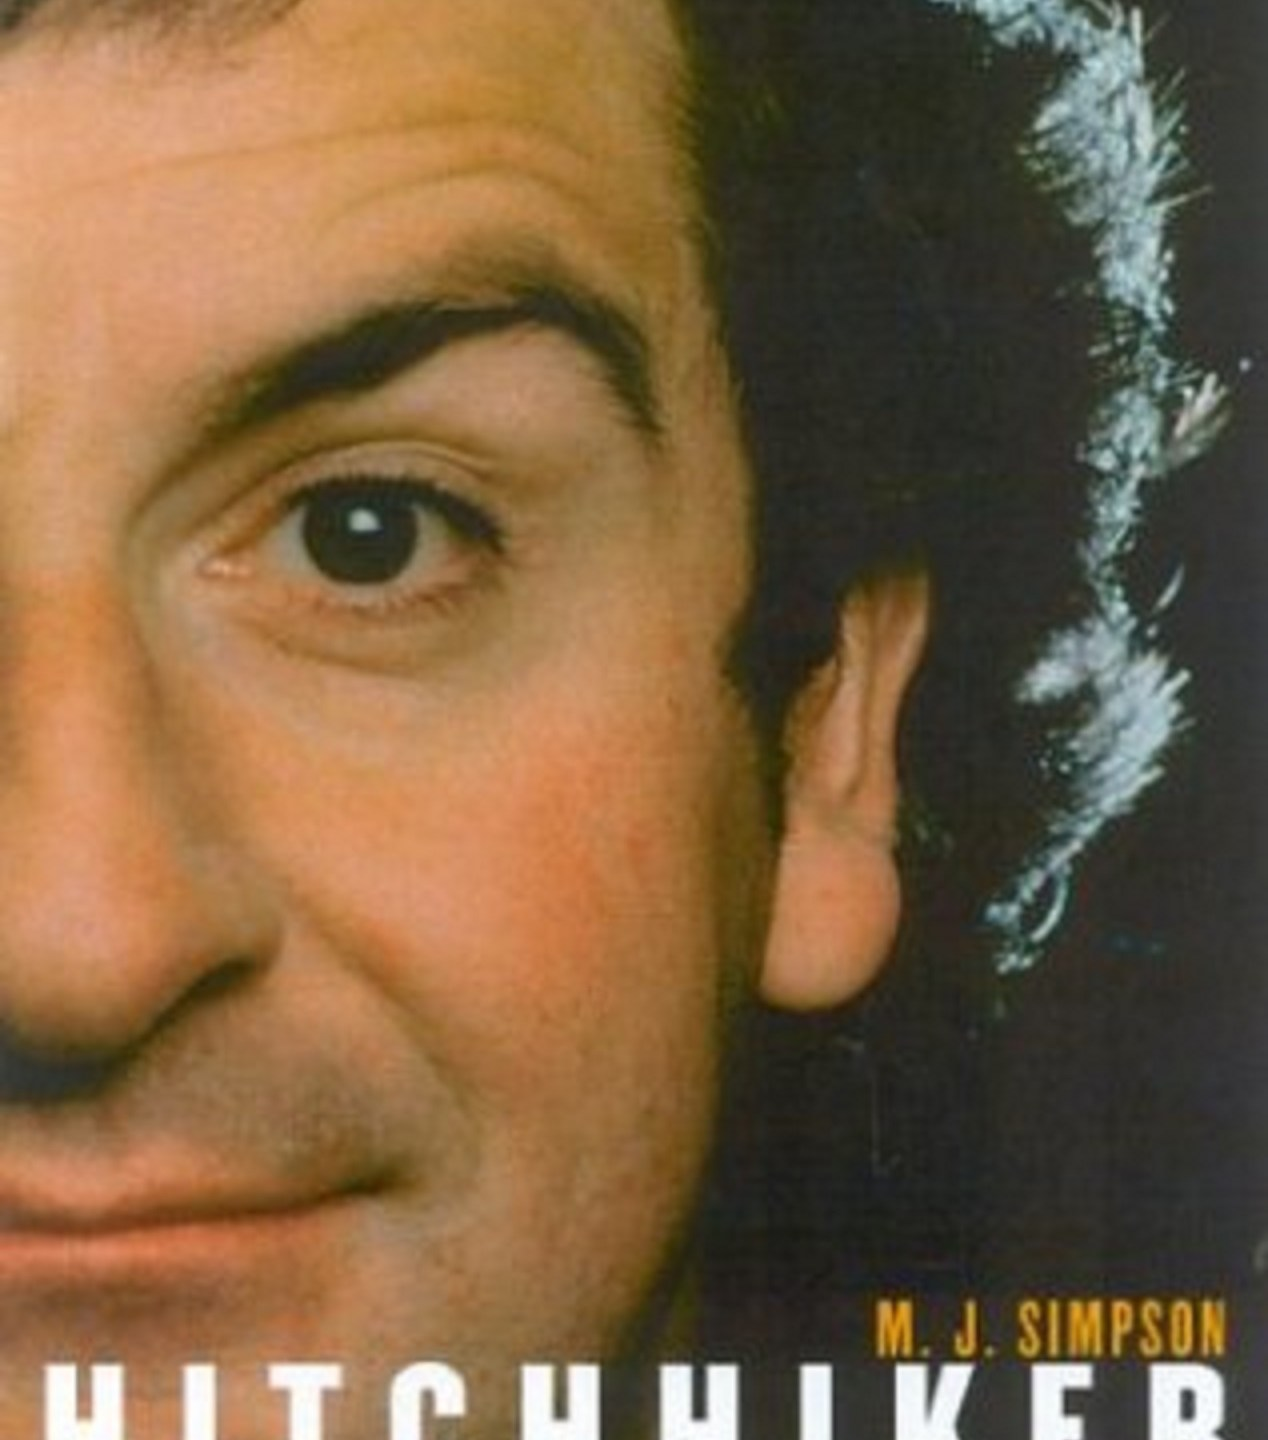 Hitchhiker: A Biography of Douglas Adams, by M. J. Simpson